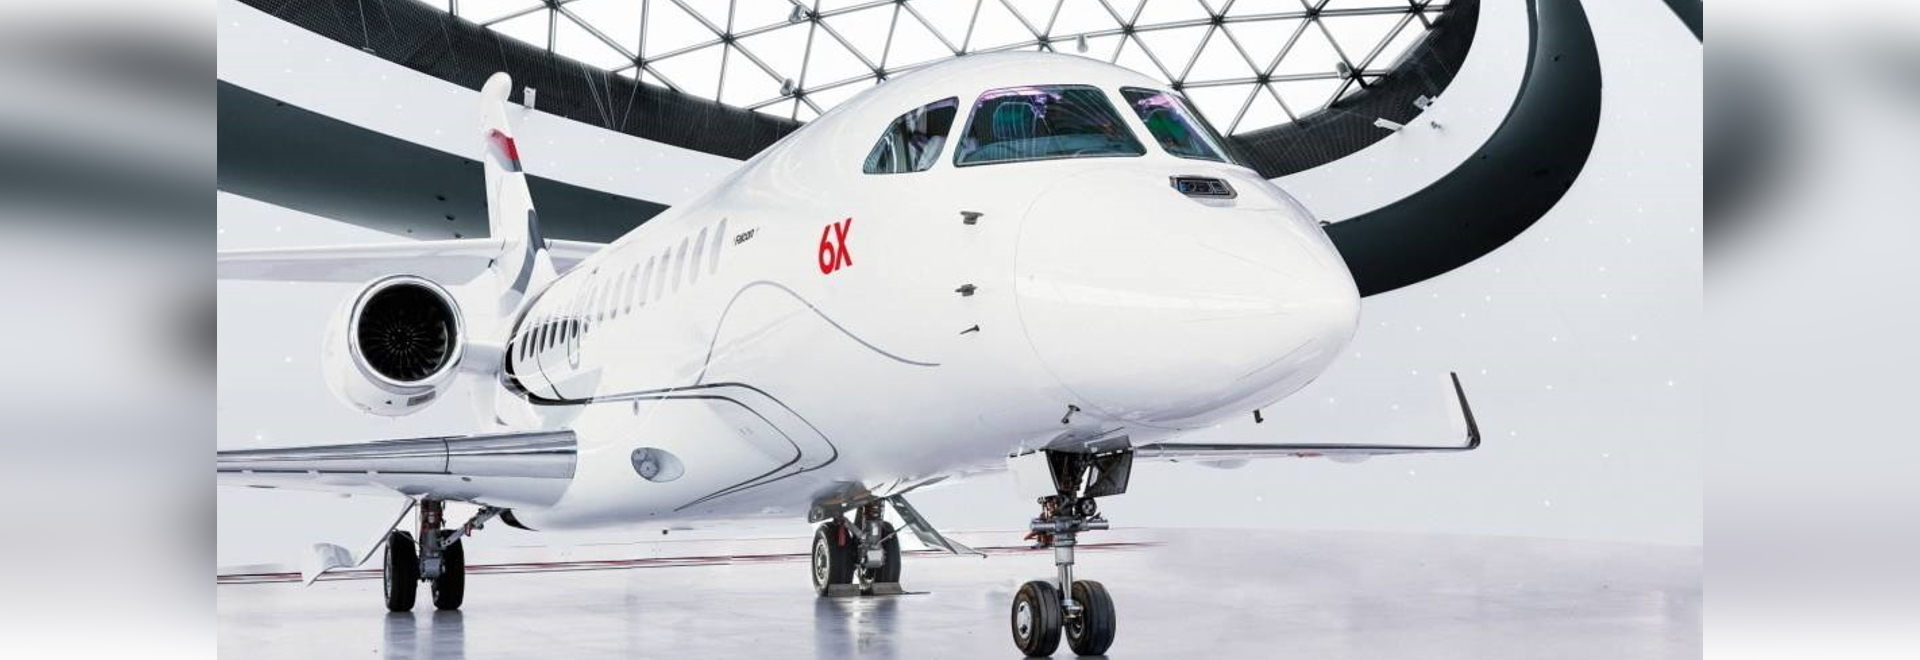 The first Dassault Falcon 6X is scheduled to roll out on December 8 at the company's production facility in Bordeaux-Merignac, France. This puts the program firmly on track to achieve first flight ...